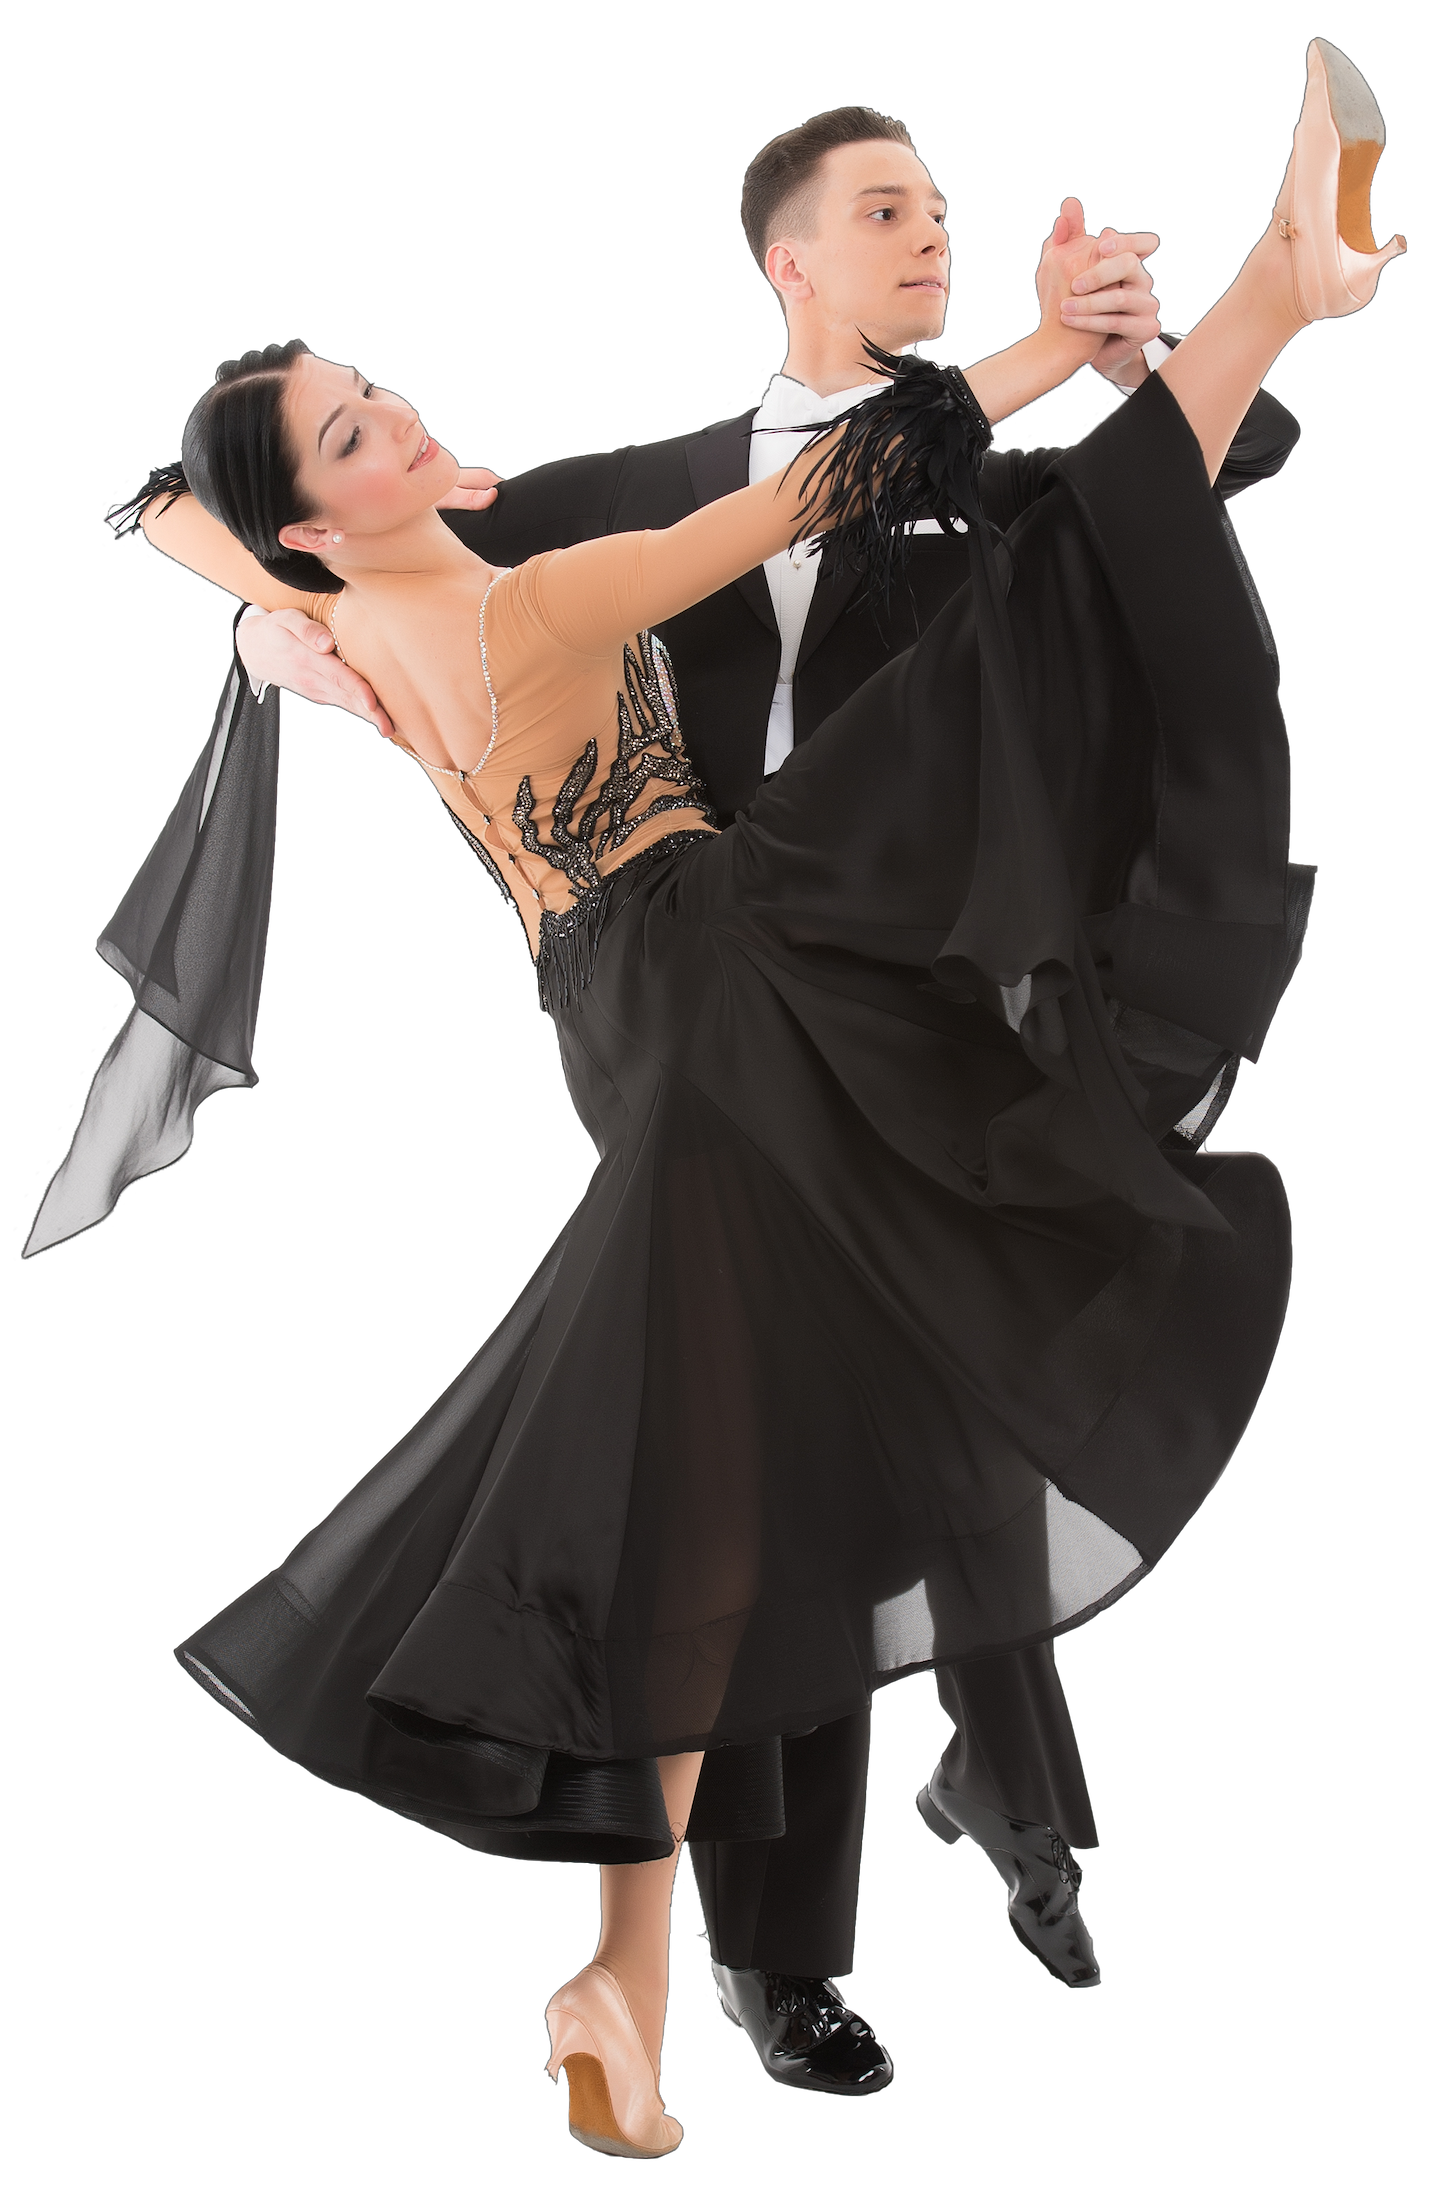 couple dancing ballroom in dance costumes